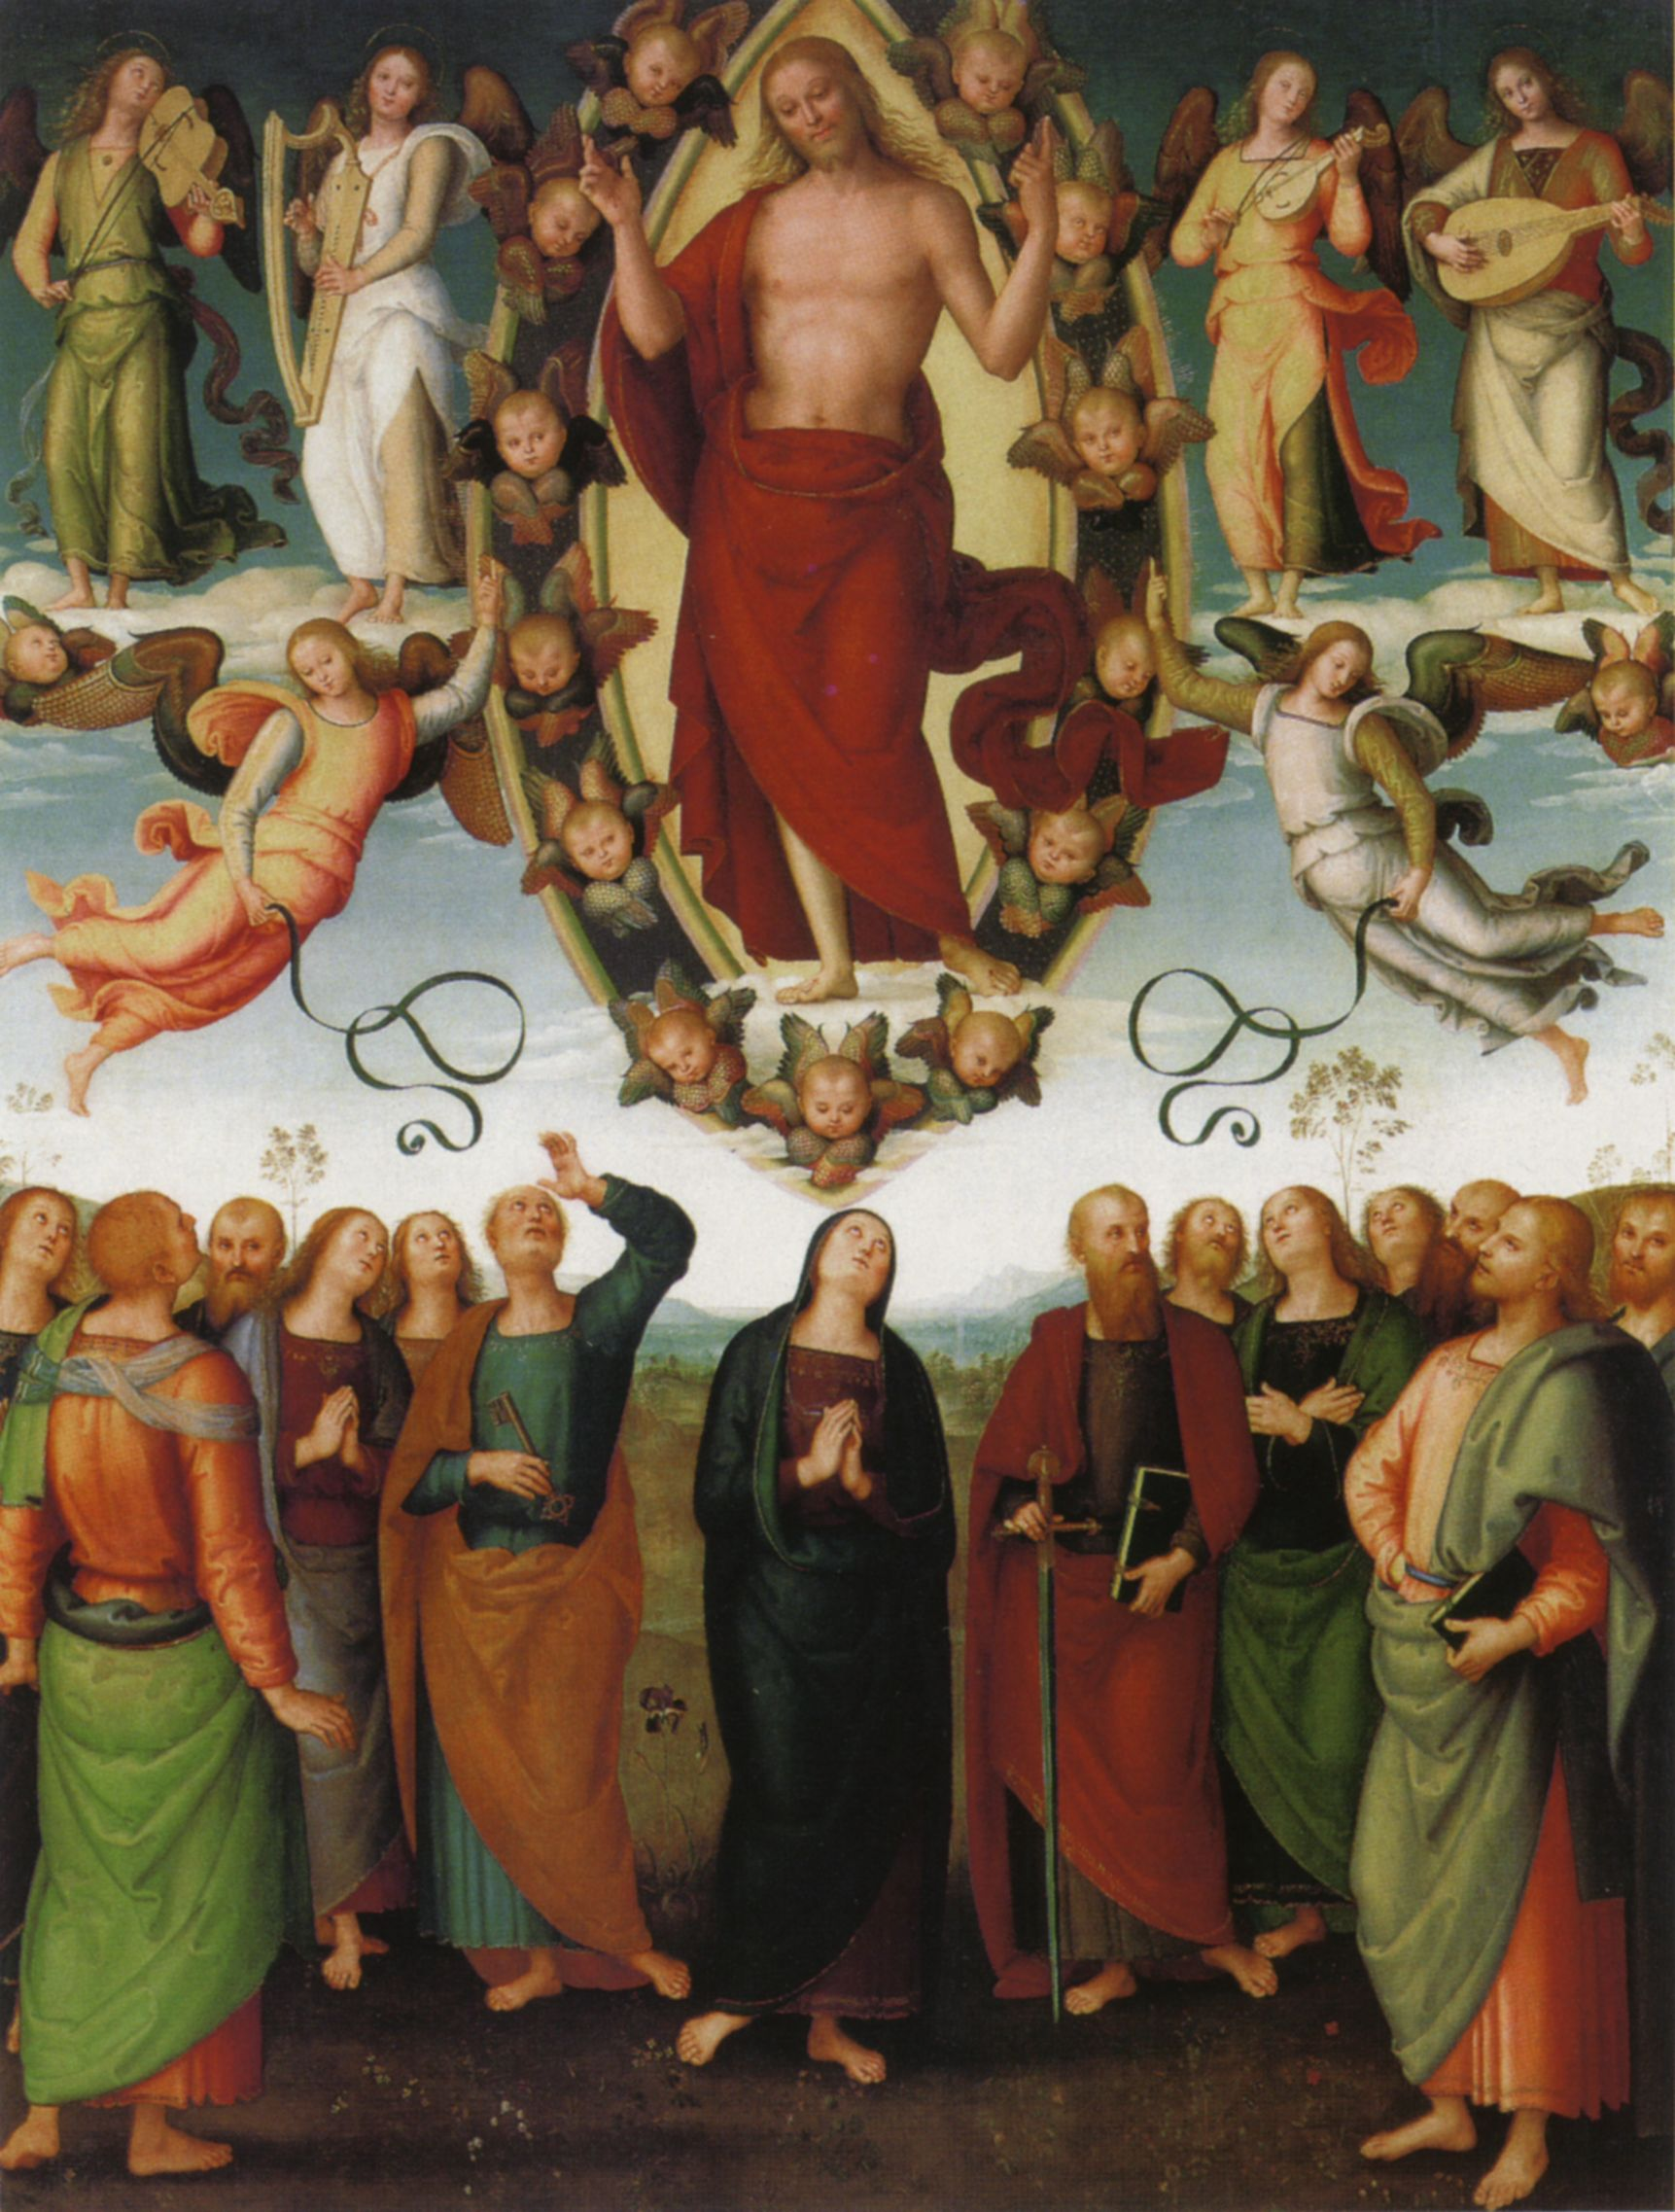 The Ascension of Christ, byPietro Perugino, 1510